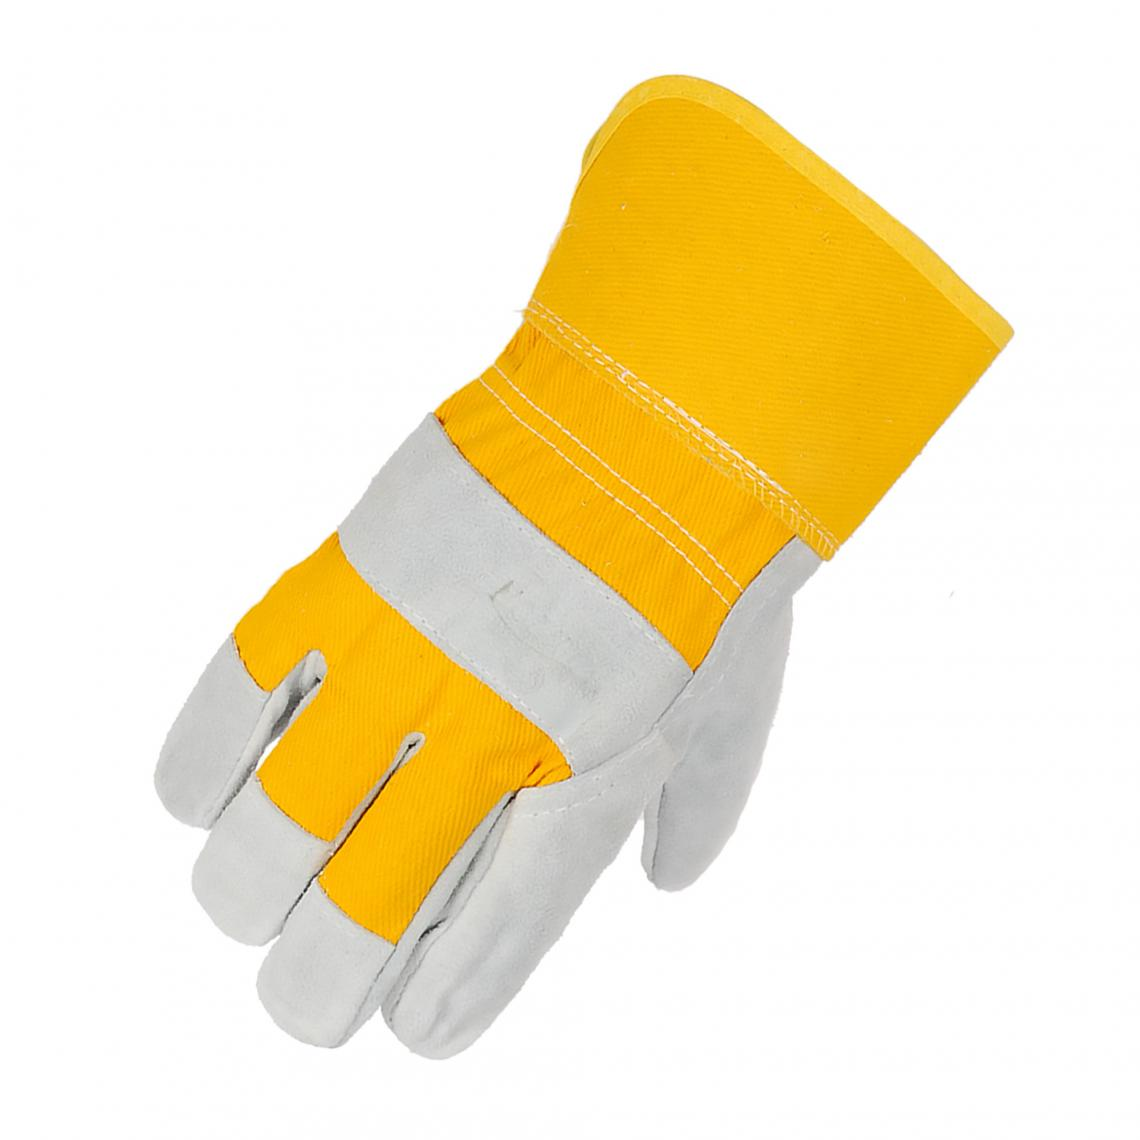 Horizon Canvas Back Cowsplit Palm Rubberized Cuff Work Gloves | Pack of 12 Pairs Work Gloves and Hats - Cleanflow